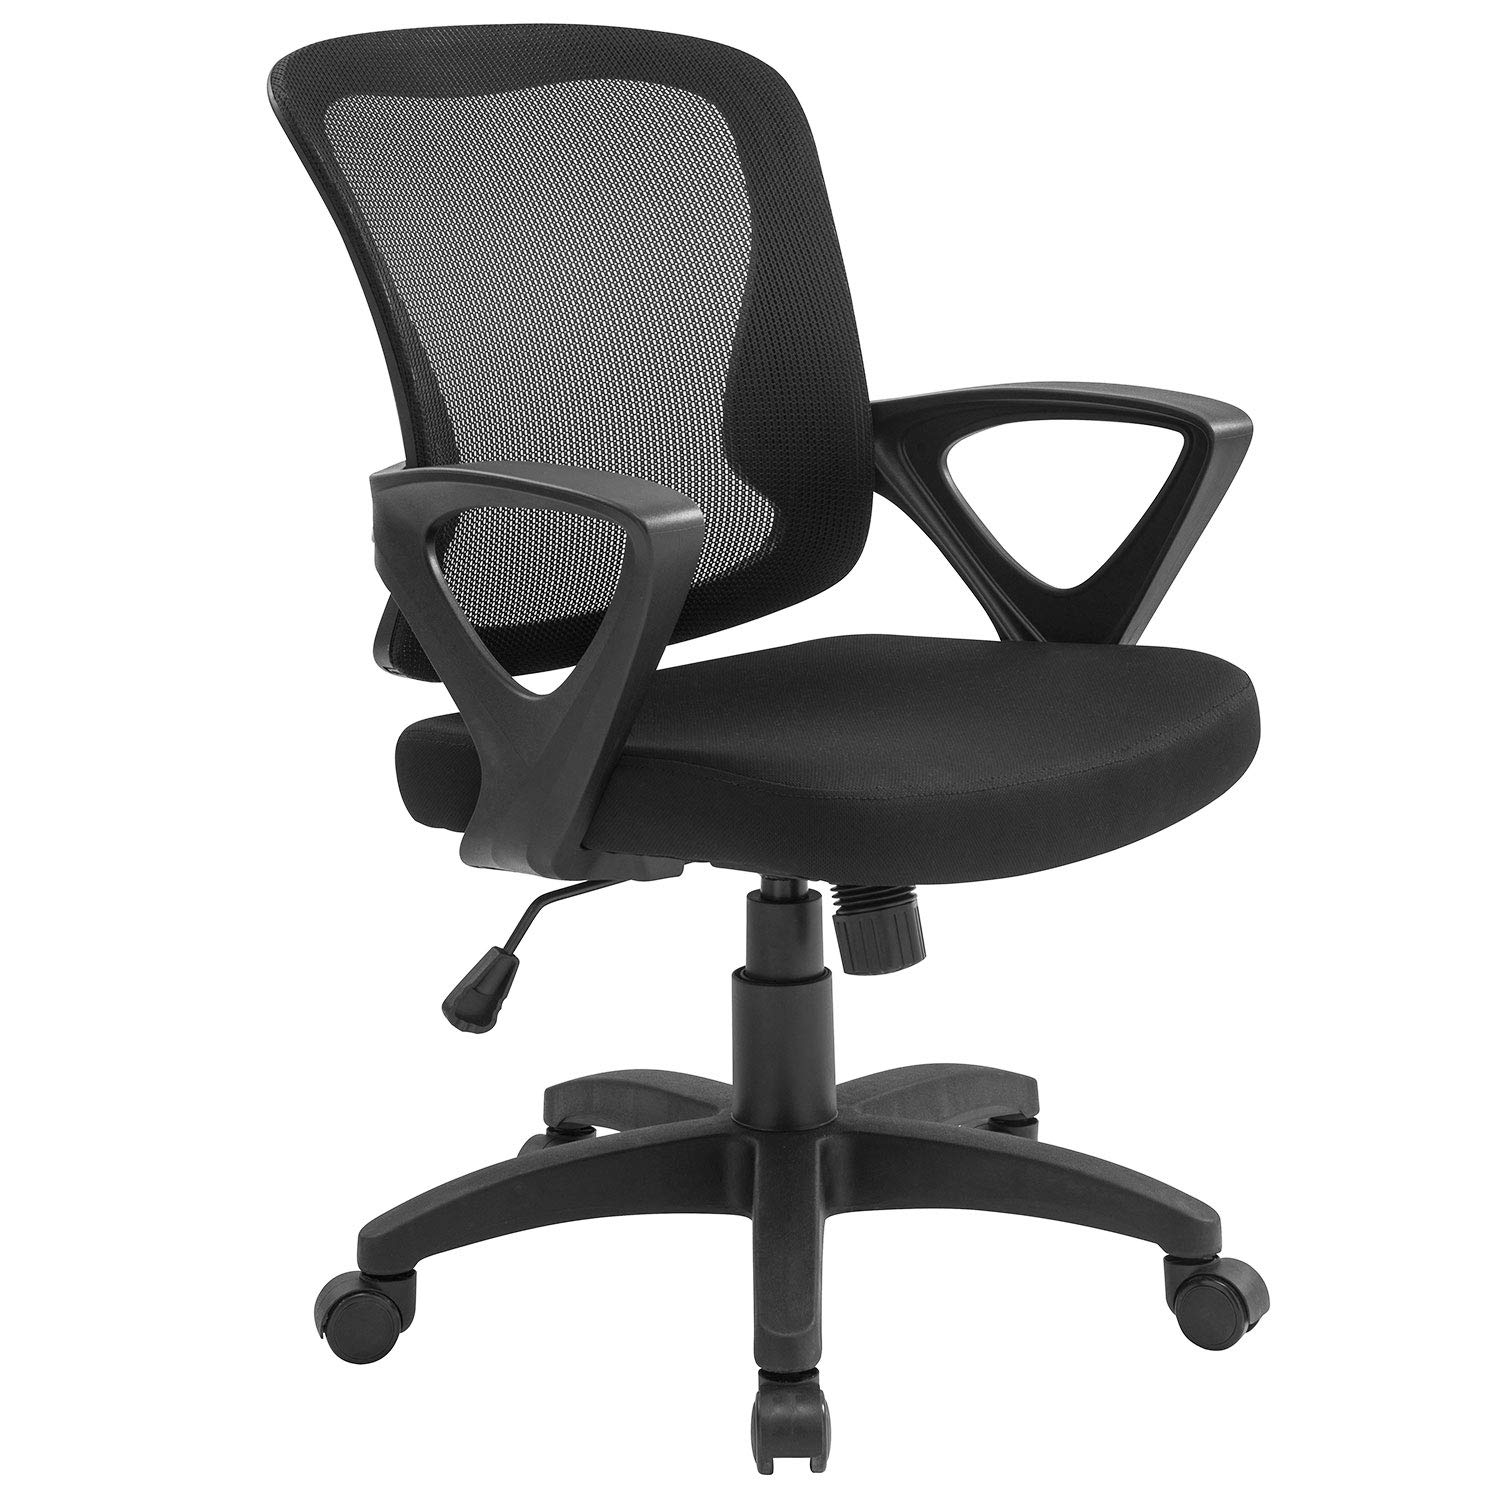 Home Office Chair Ergonomic Desk Chair Adjustable Height Modern Mid Back Swivel Chair for Small Place, Black Office Chairs